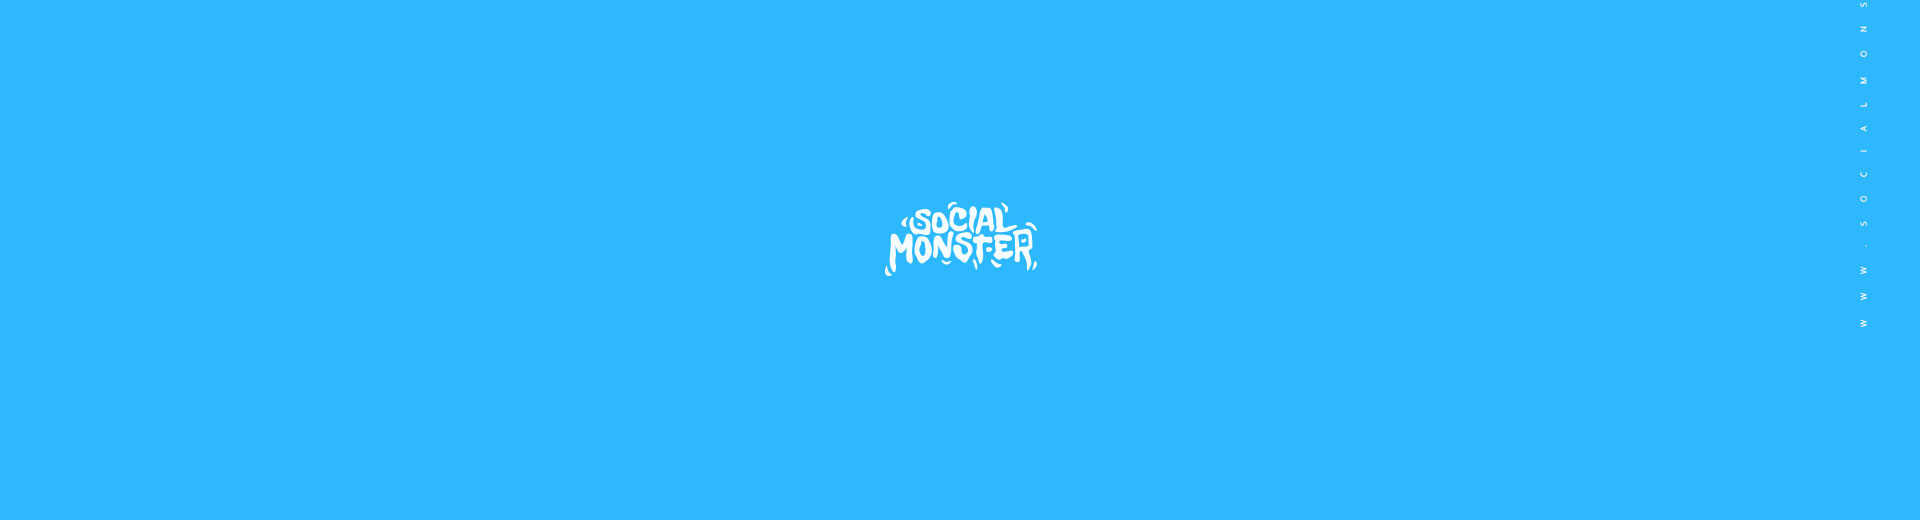 Social Monster New image 16